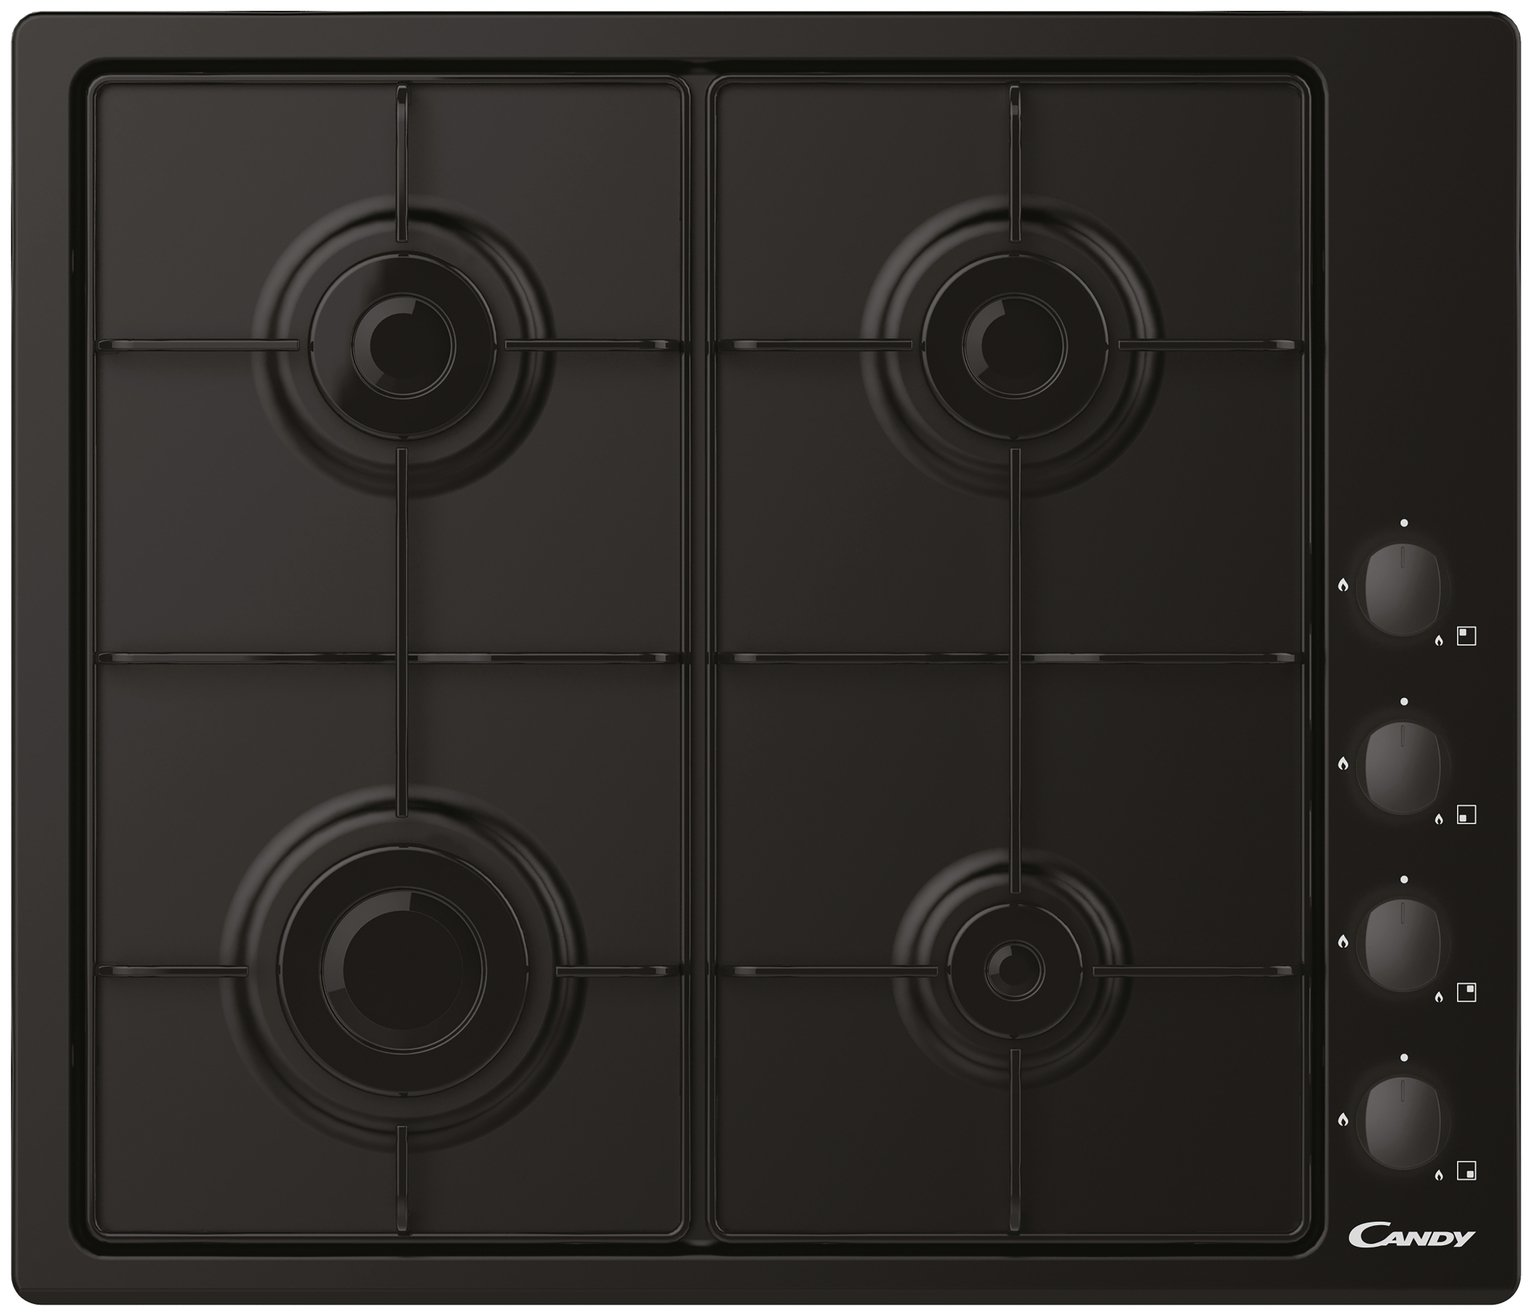 Candy CHW6LBB Gas Hob - Black